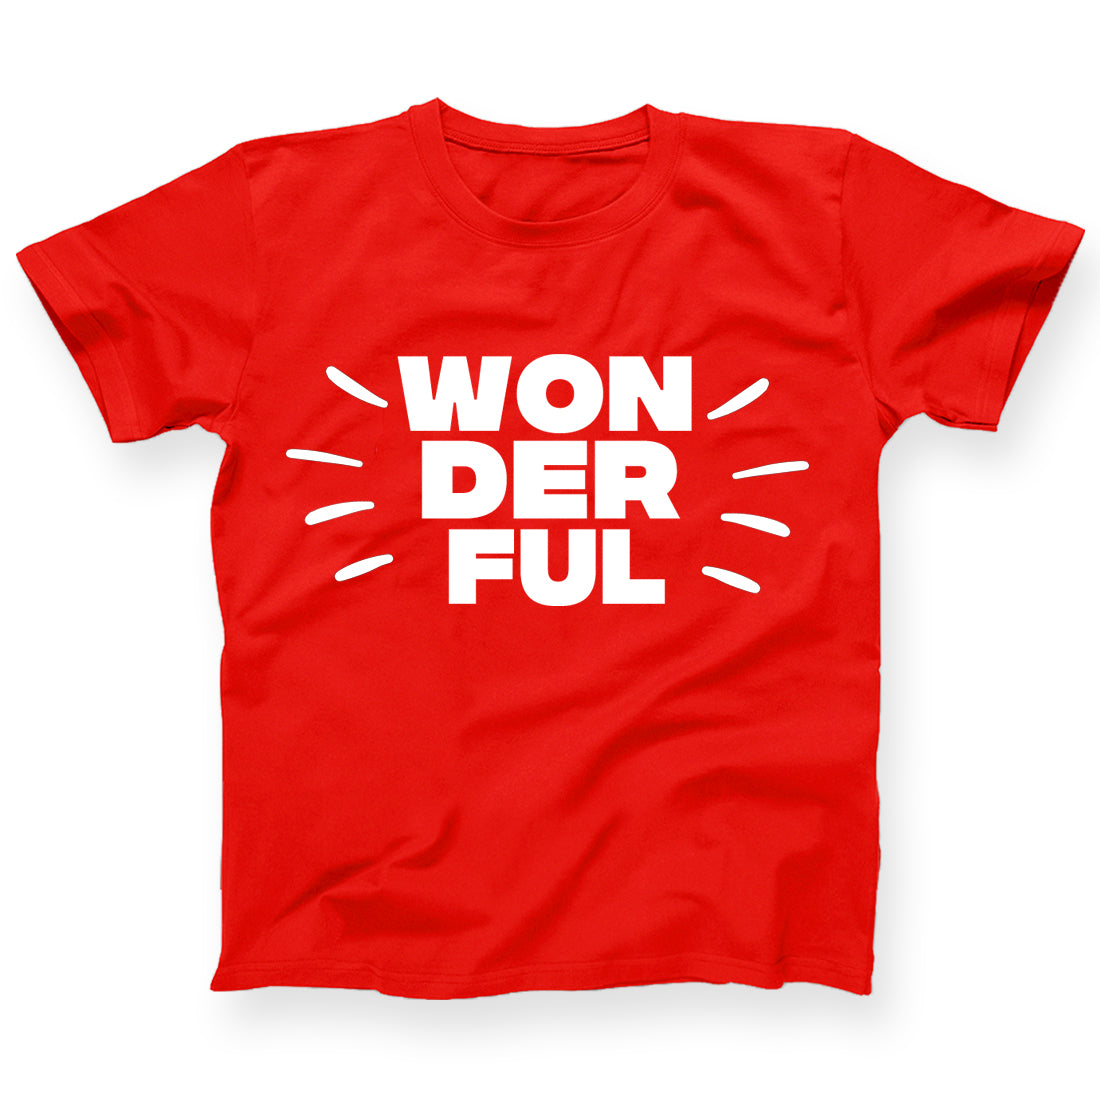 WONDERFUL KIDS TSHIRT-CHILDREN'S DAY TSHIRT